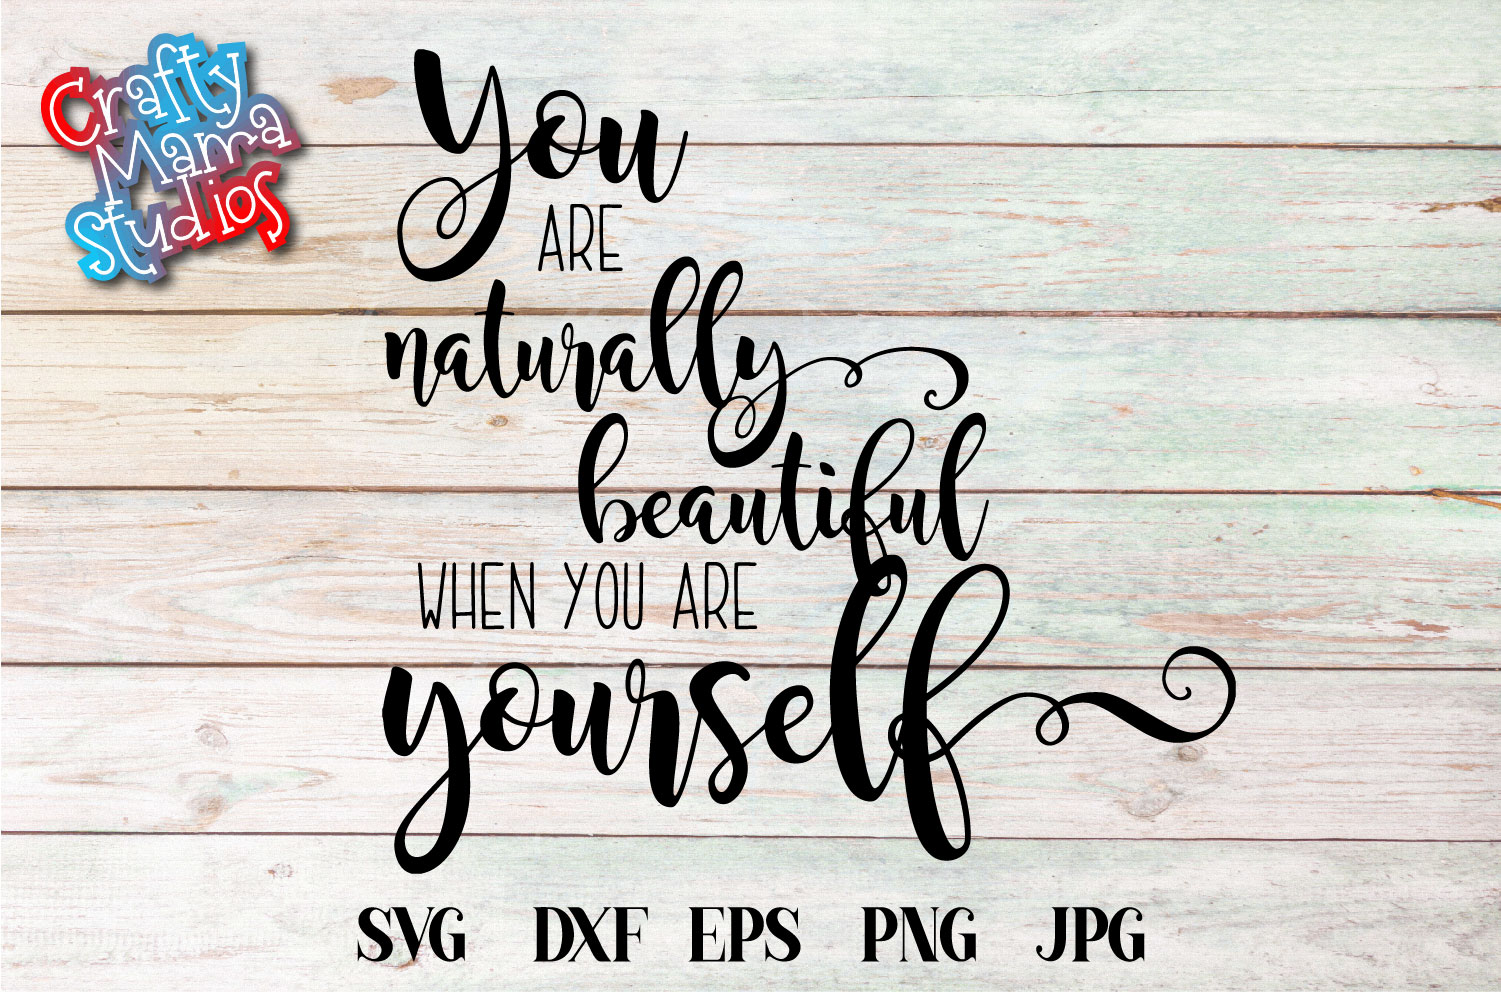 You Are Naturally Beautiful When You Are Yourself SVG example image 2